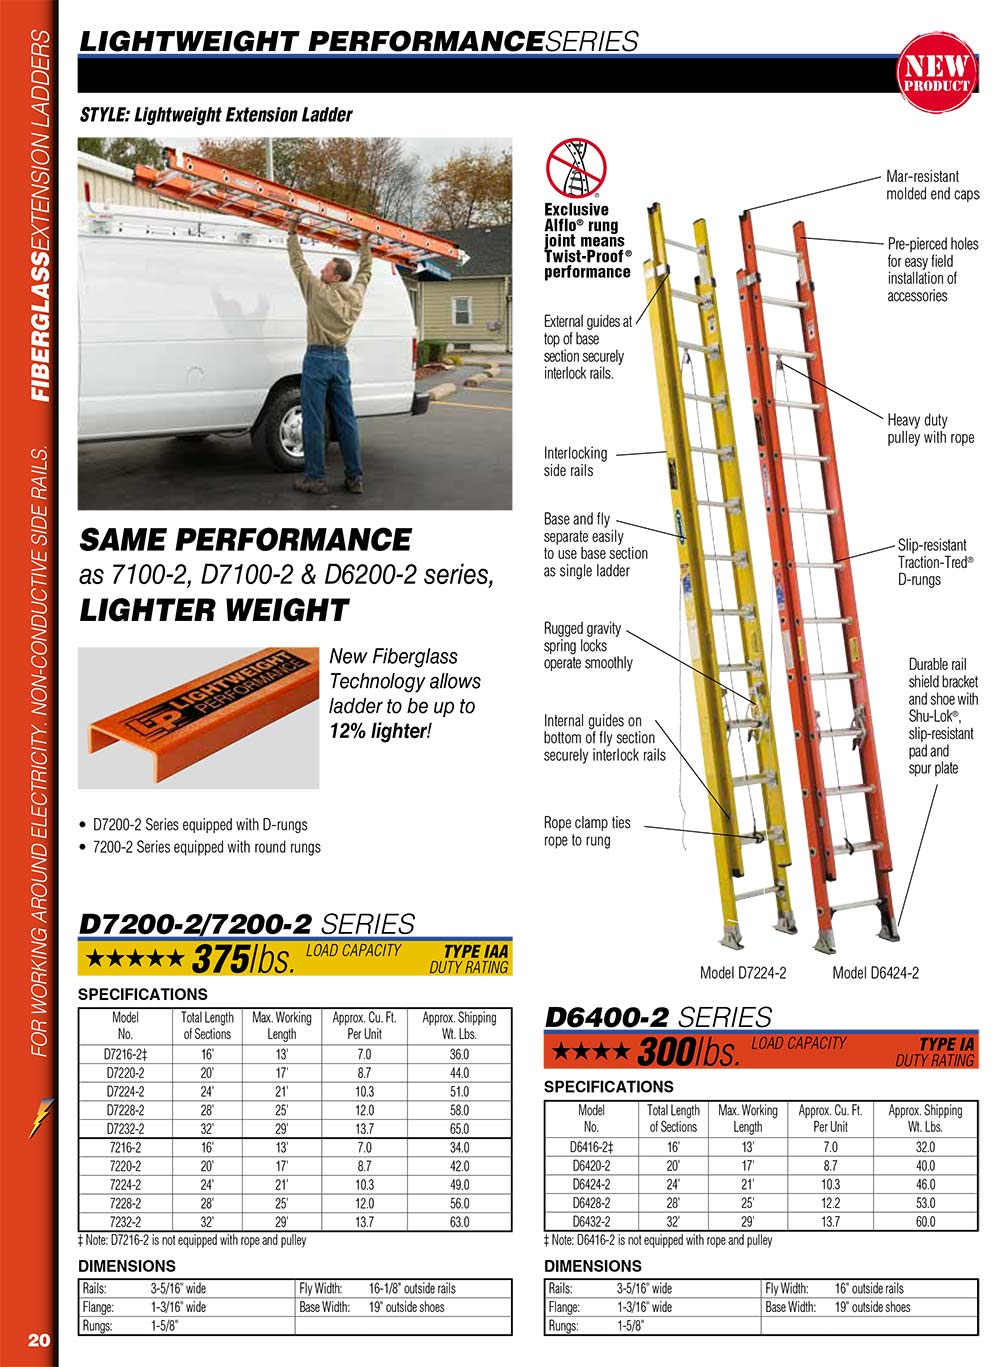 Werner D7200-2 Series Lightweight Extension Ladder